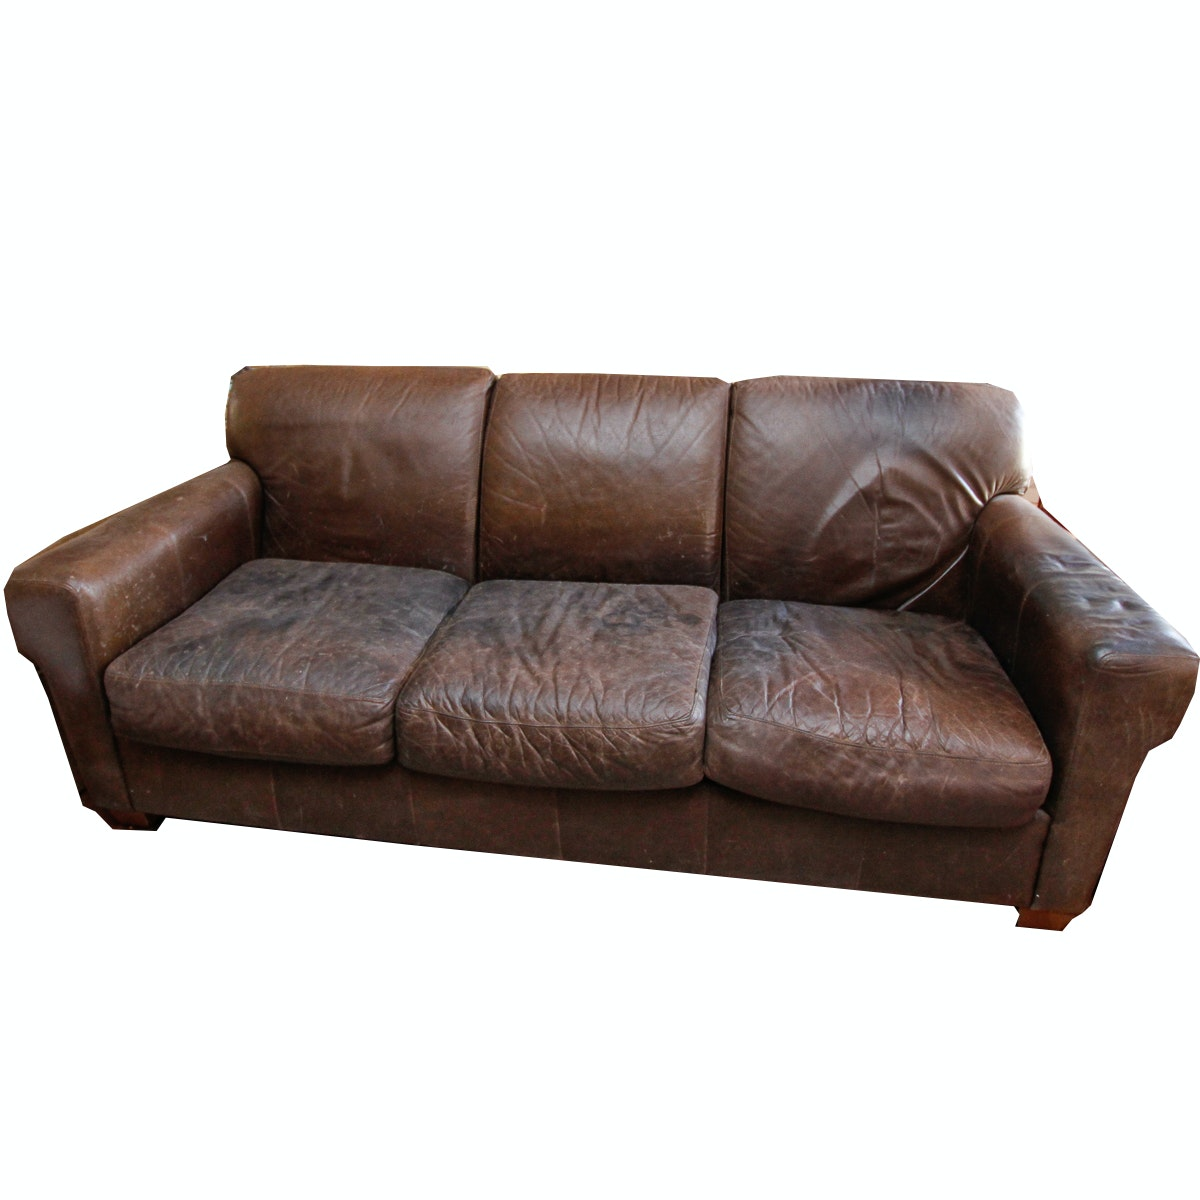 Vintage Leather Sofa by Bauhaus